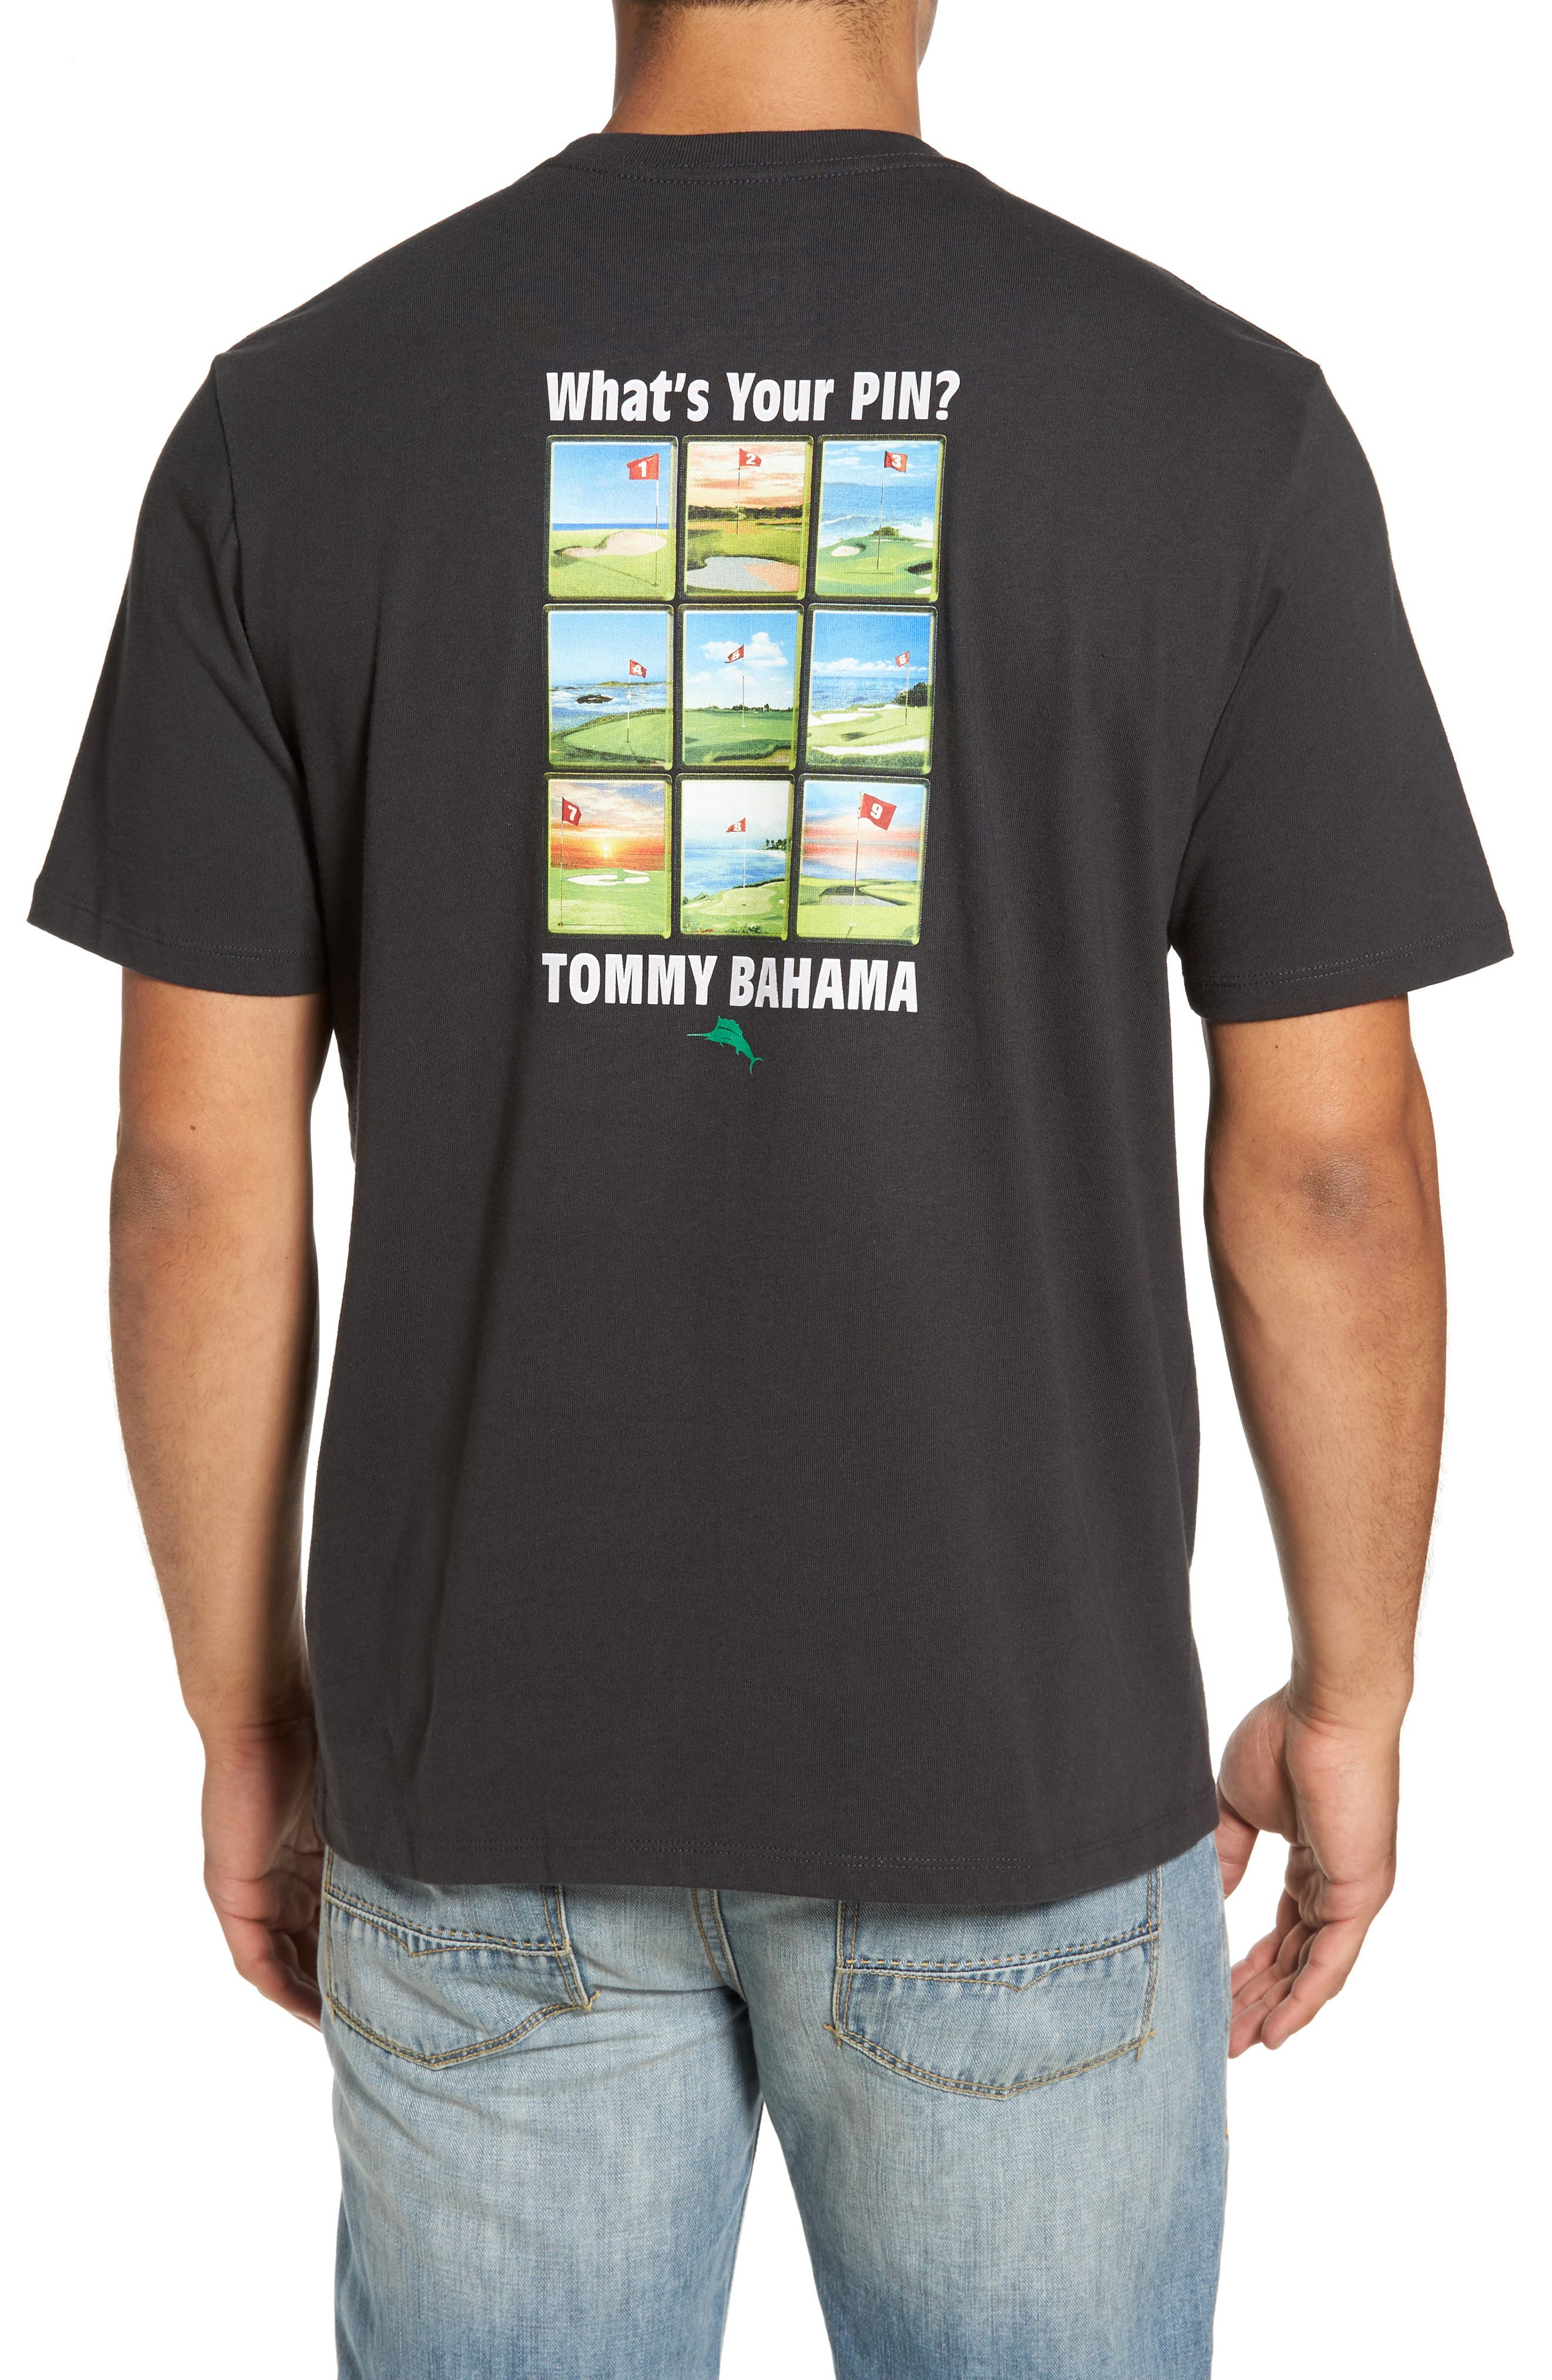 Main Image - Tommy Bahama What's Your Pin Graphic T-Shirt